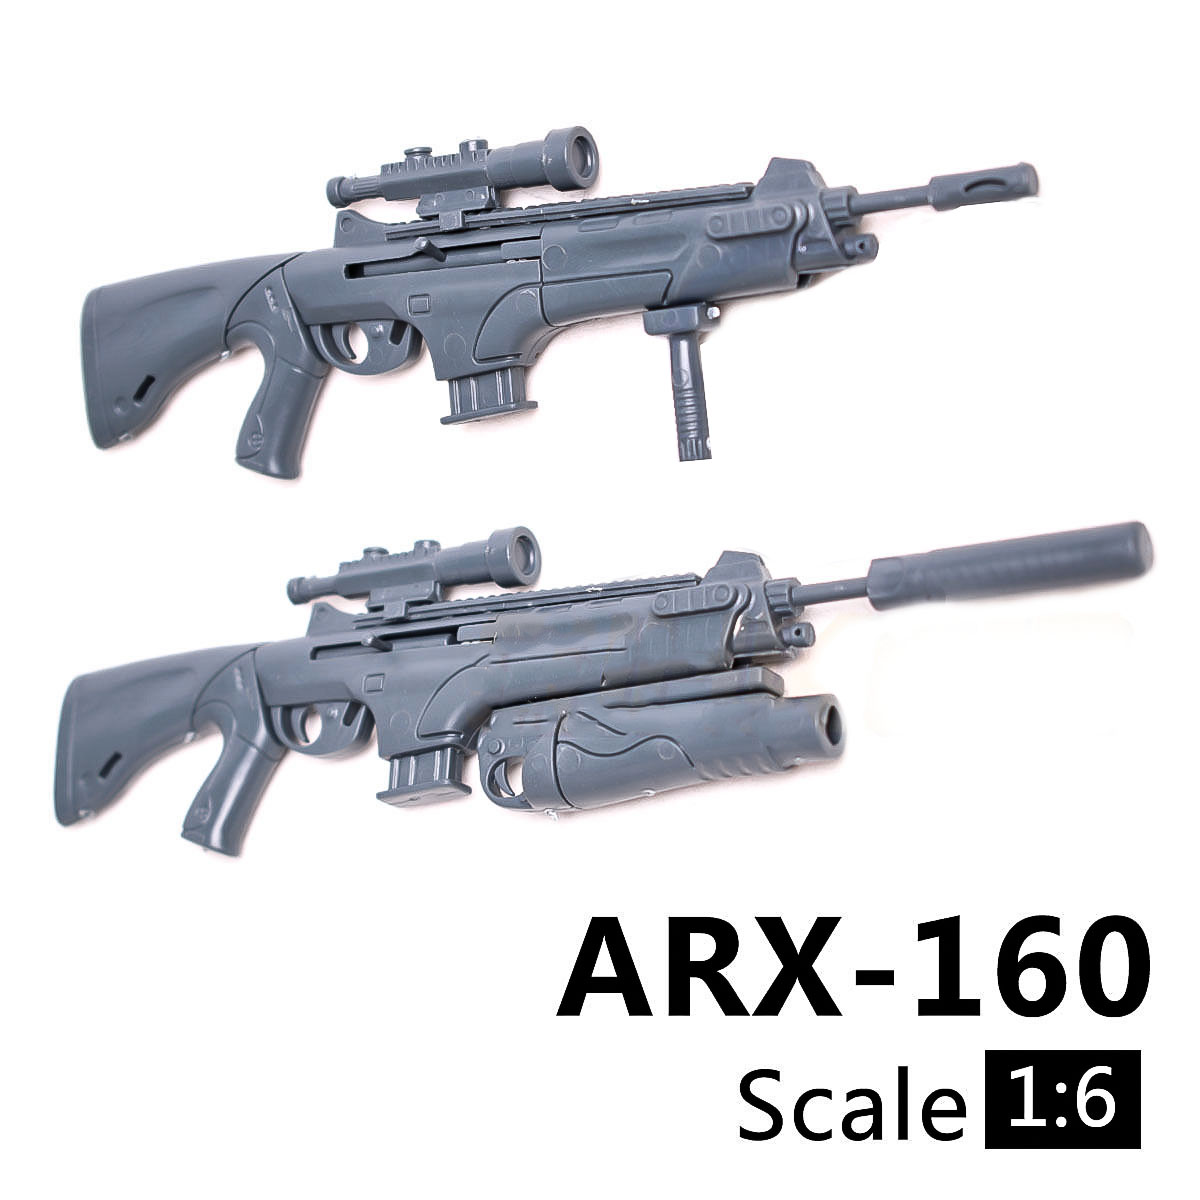 1/6 Scale ARX160 Rifle Gun Model Tactical Gun With Launcher Assembly Building Bricks Weapon For Action Figure